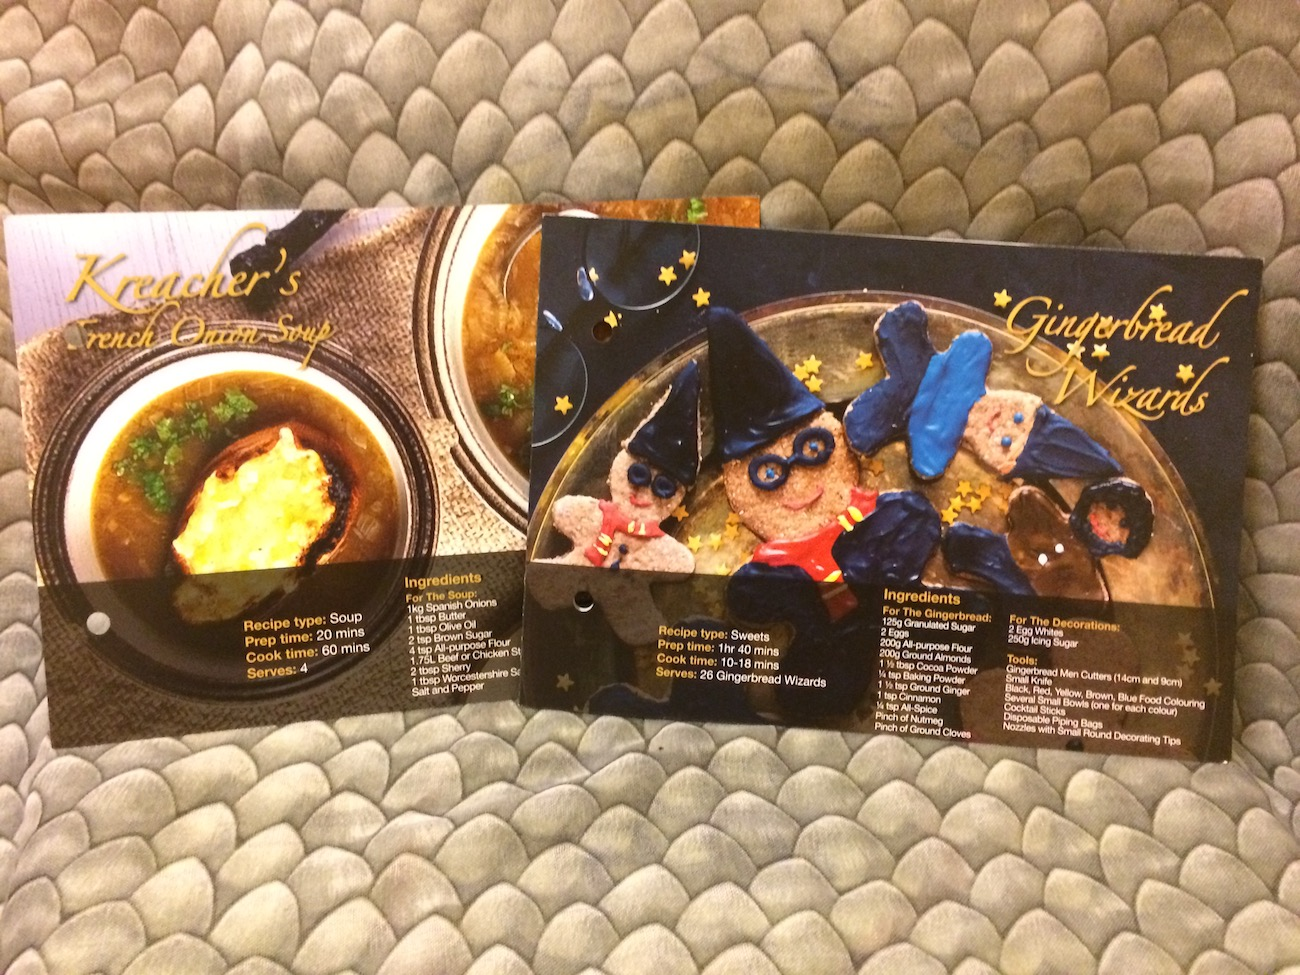 As usual, there were two recipe cards in the World of Wizardry box.